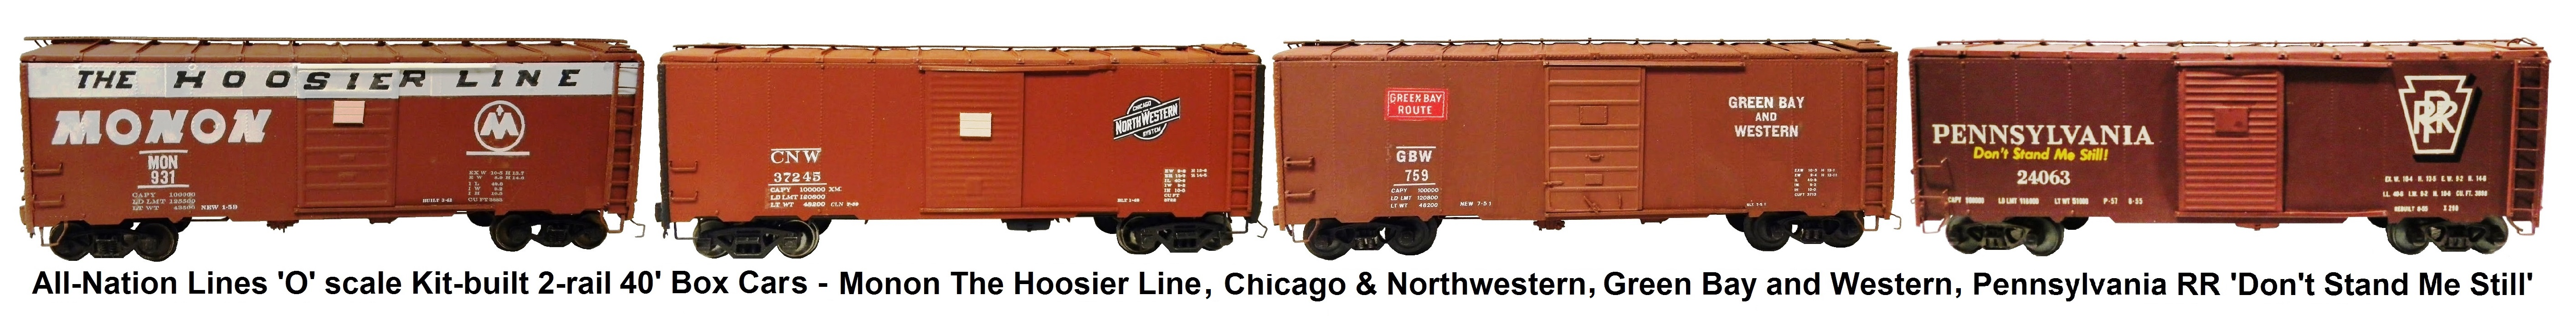 All-Nation 'O' scale 2-rail 40' Steel Box Car Kit-built into Monon The Hoosier Line